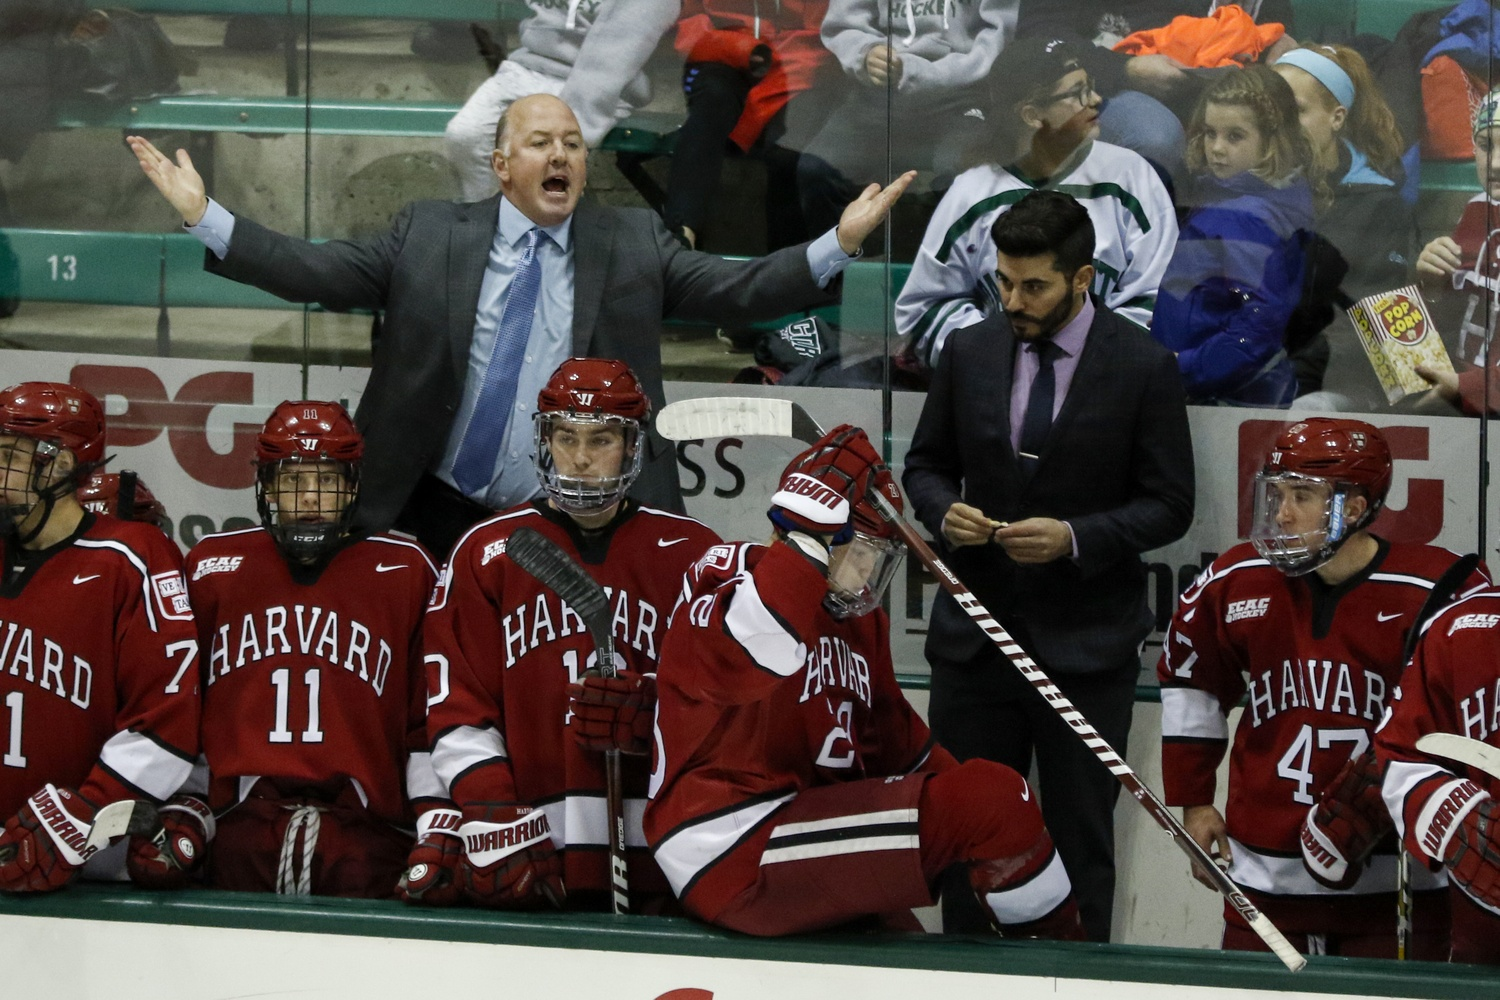 Tempers flared in this matchup of ECAC travel partners, as the Crimson and the Big Green combined for 14 minor penalties through 60 minutes of play.